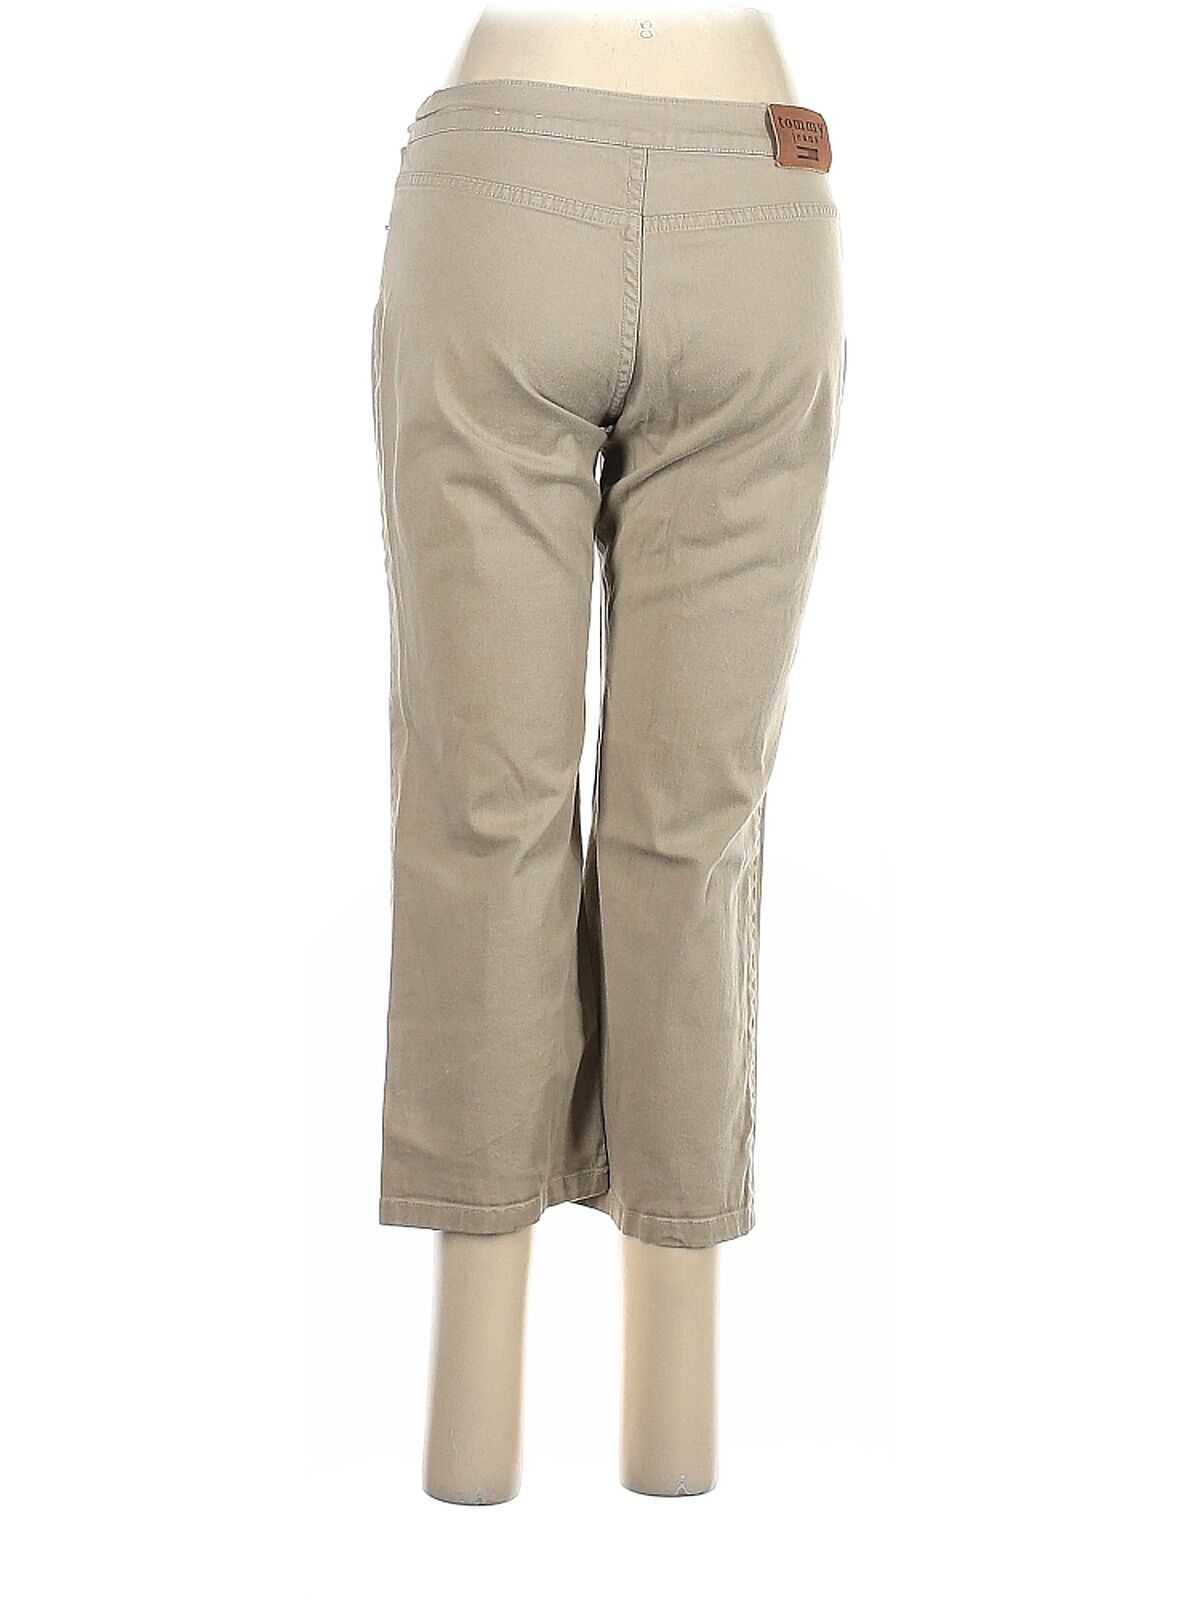 Tommy Hilfiger Women Brown Casual Pants 9 - image 2